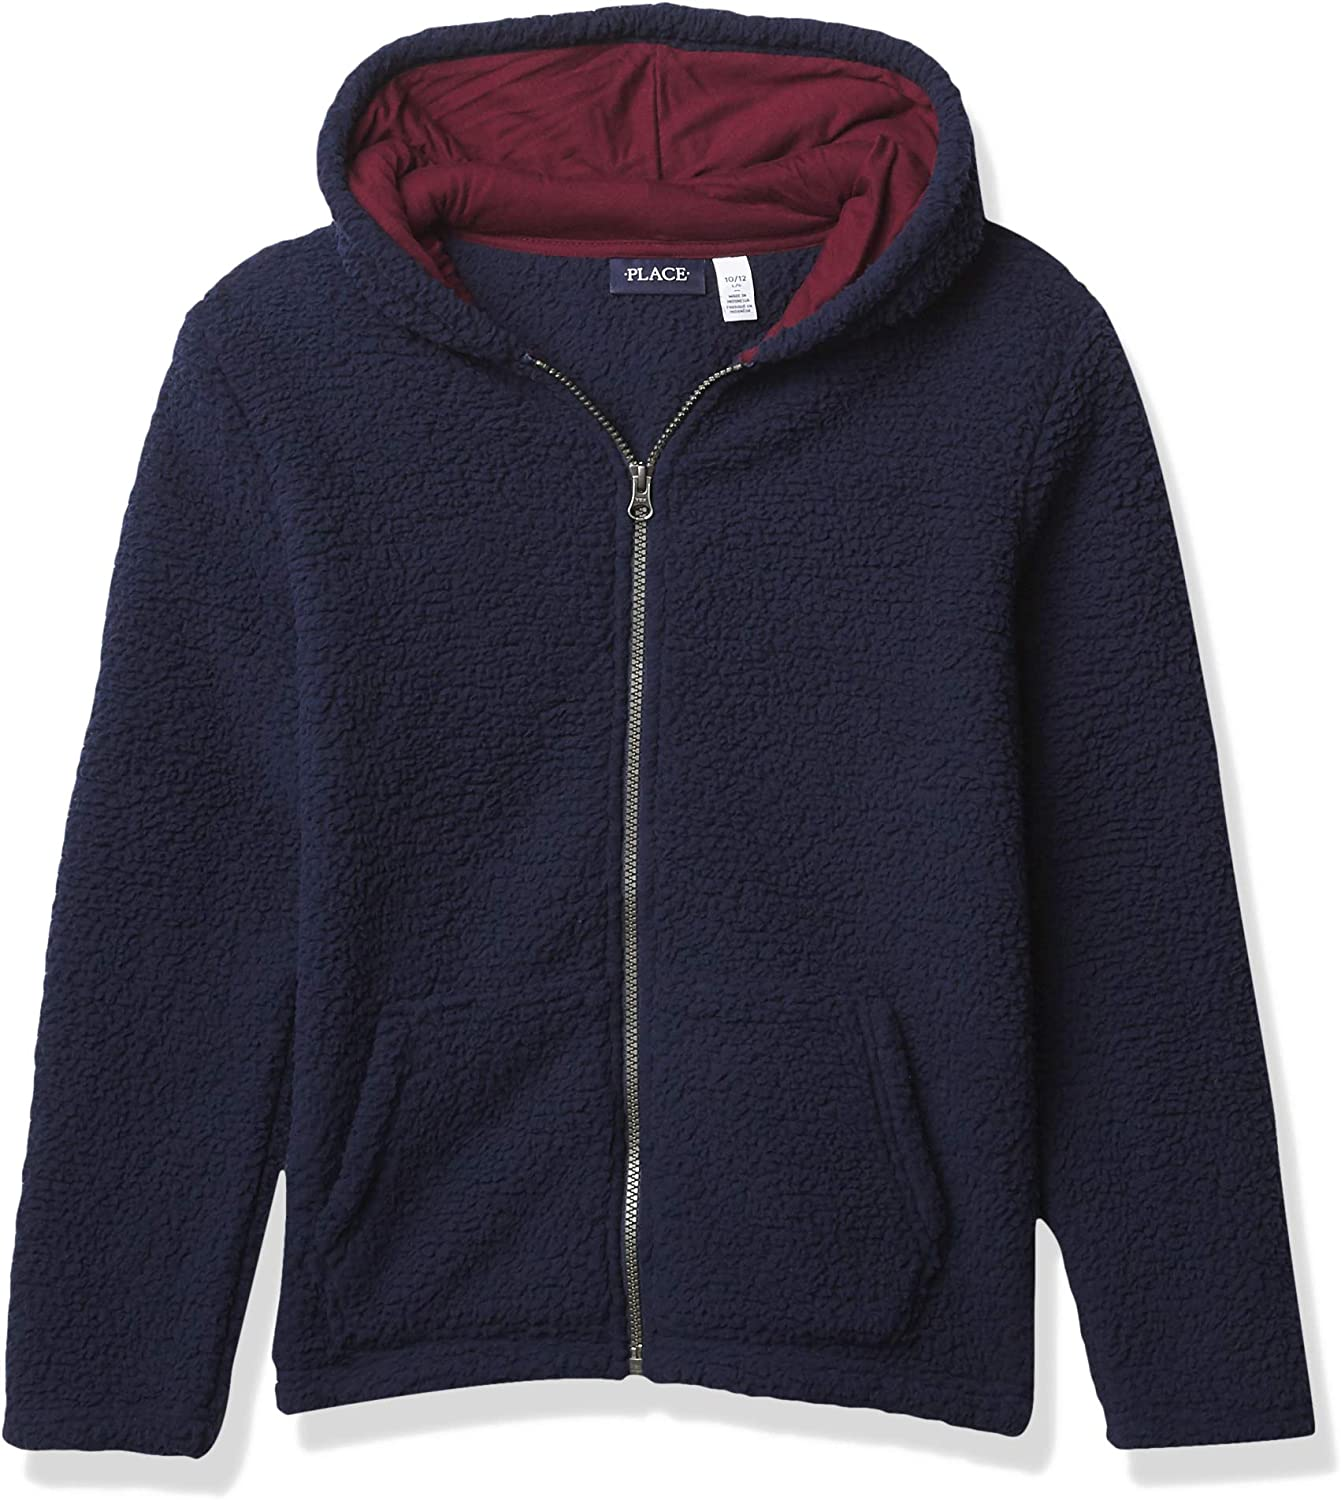 The Children's Place Boys' Sherpa Cozy Zip Up Hoodie